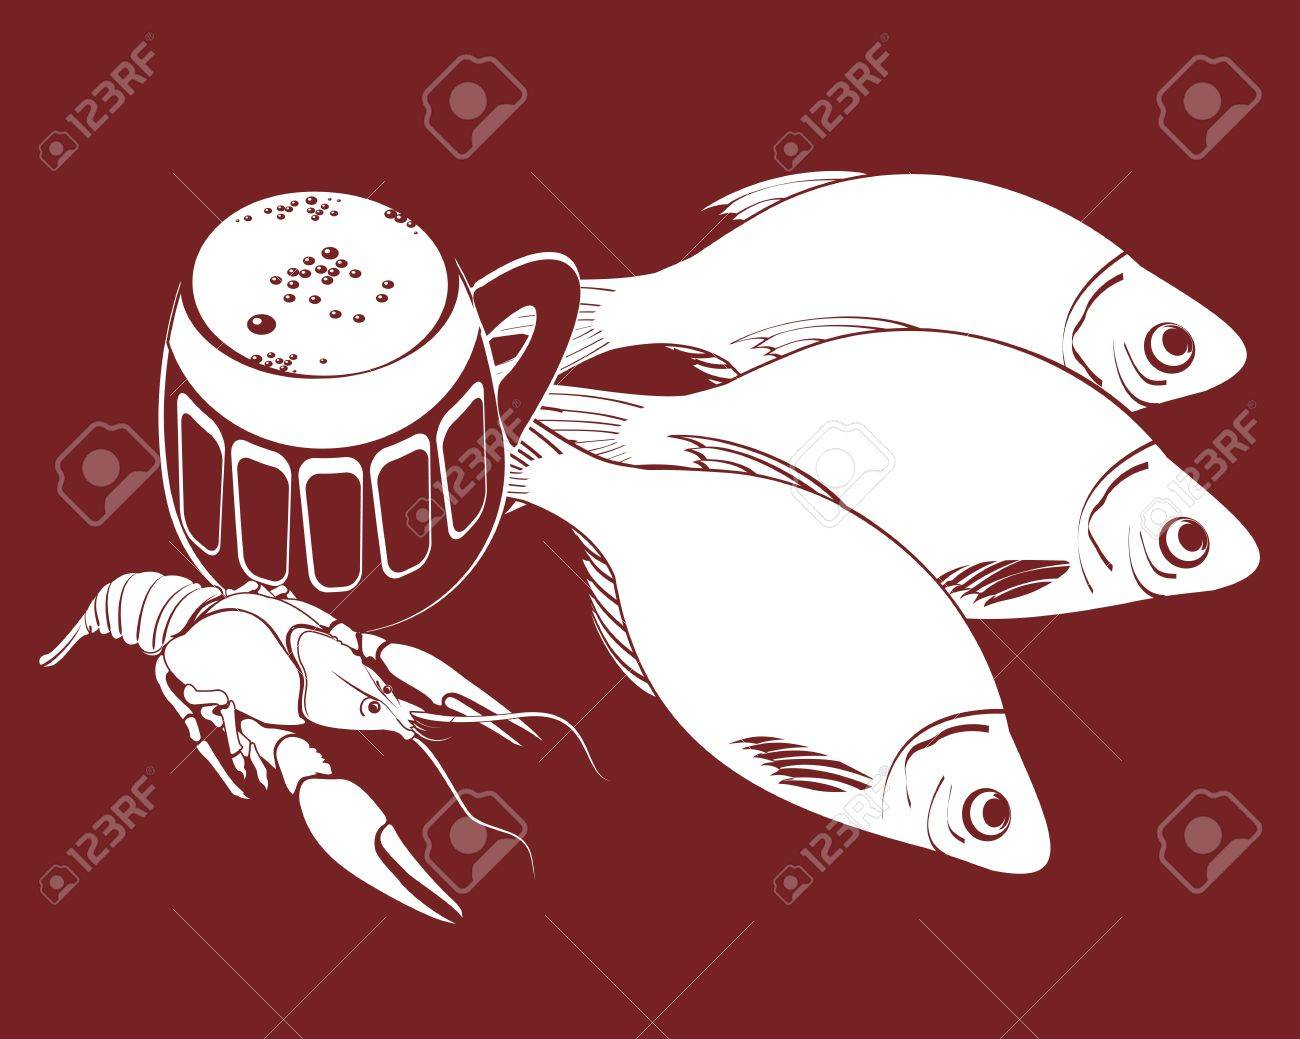 Vector illustration of the stockfishes, cancer and bear Stock Vector - 14073825